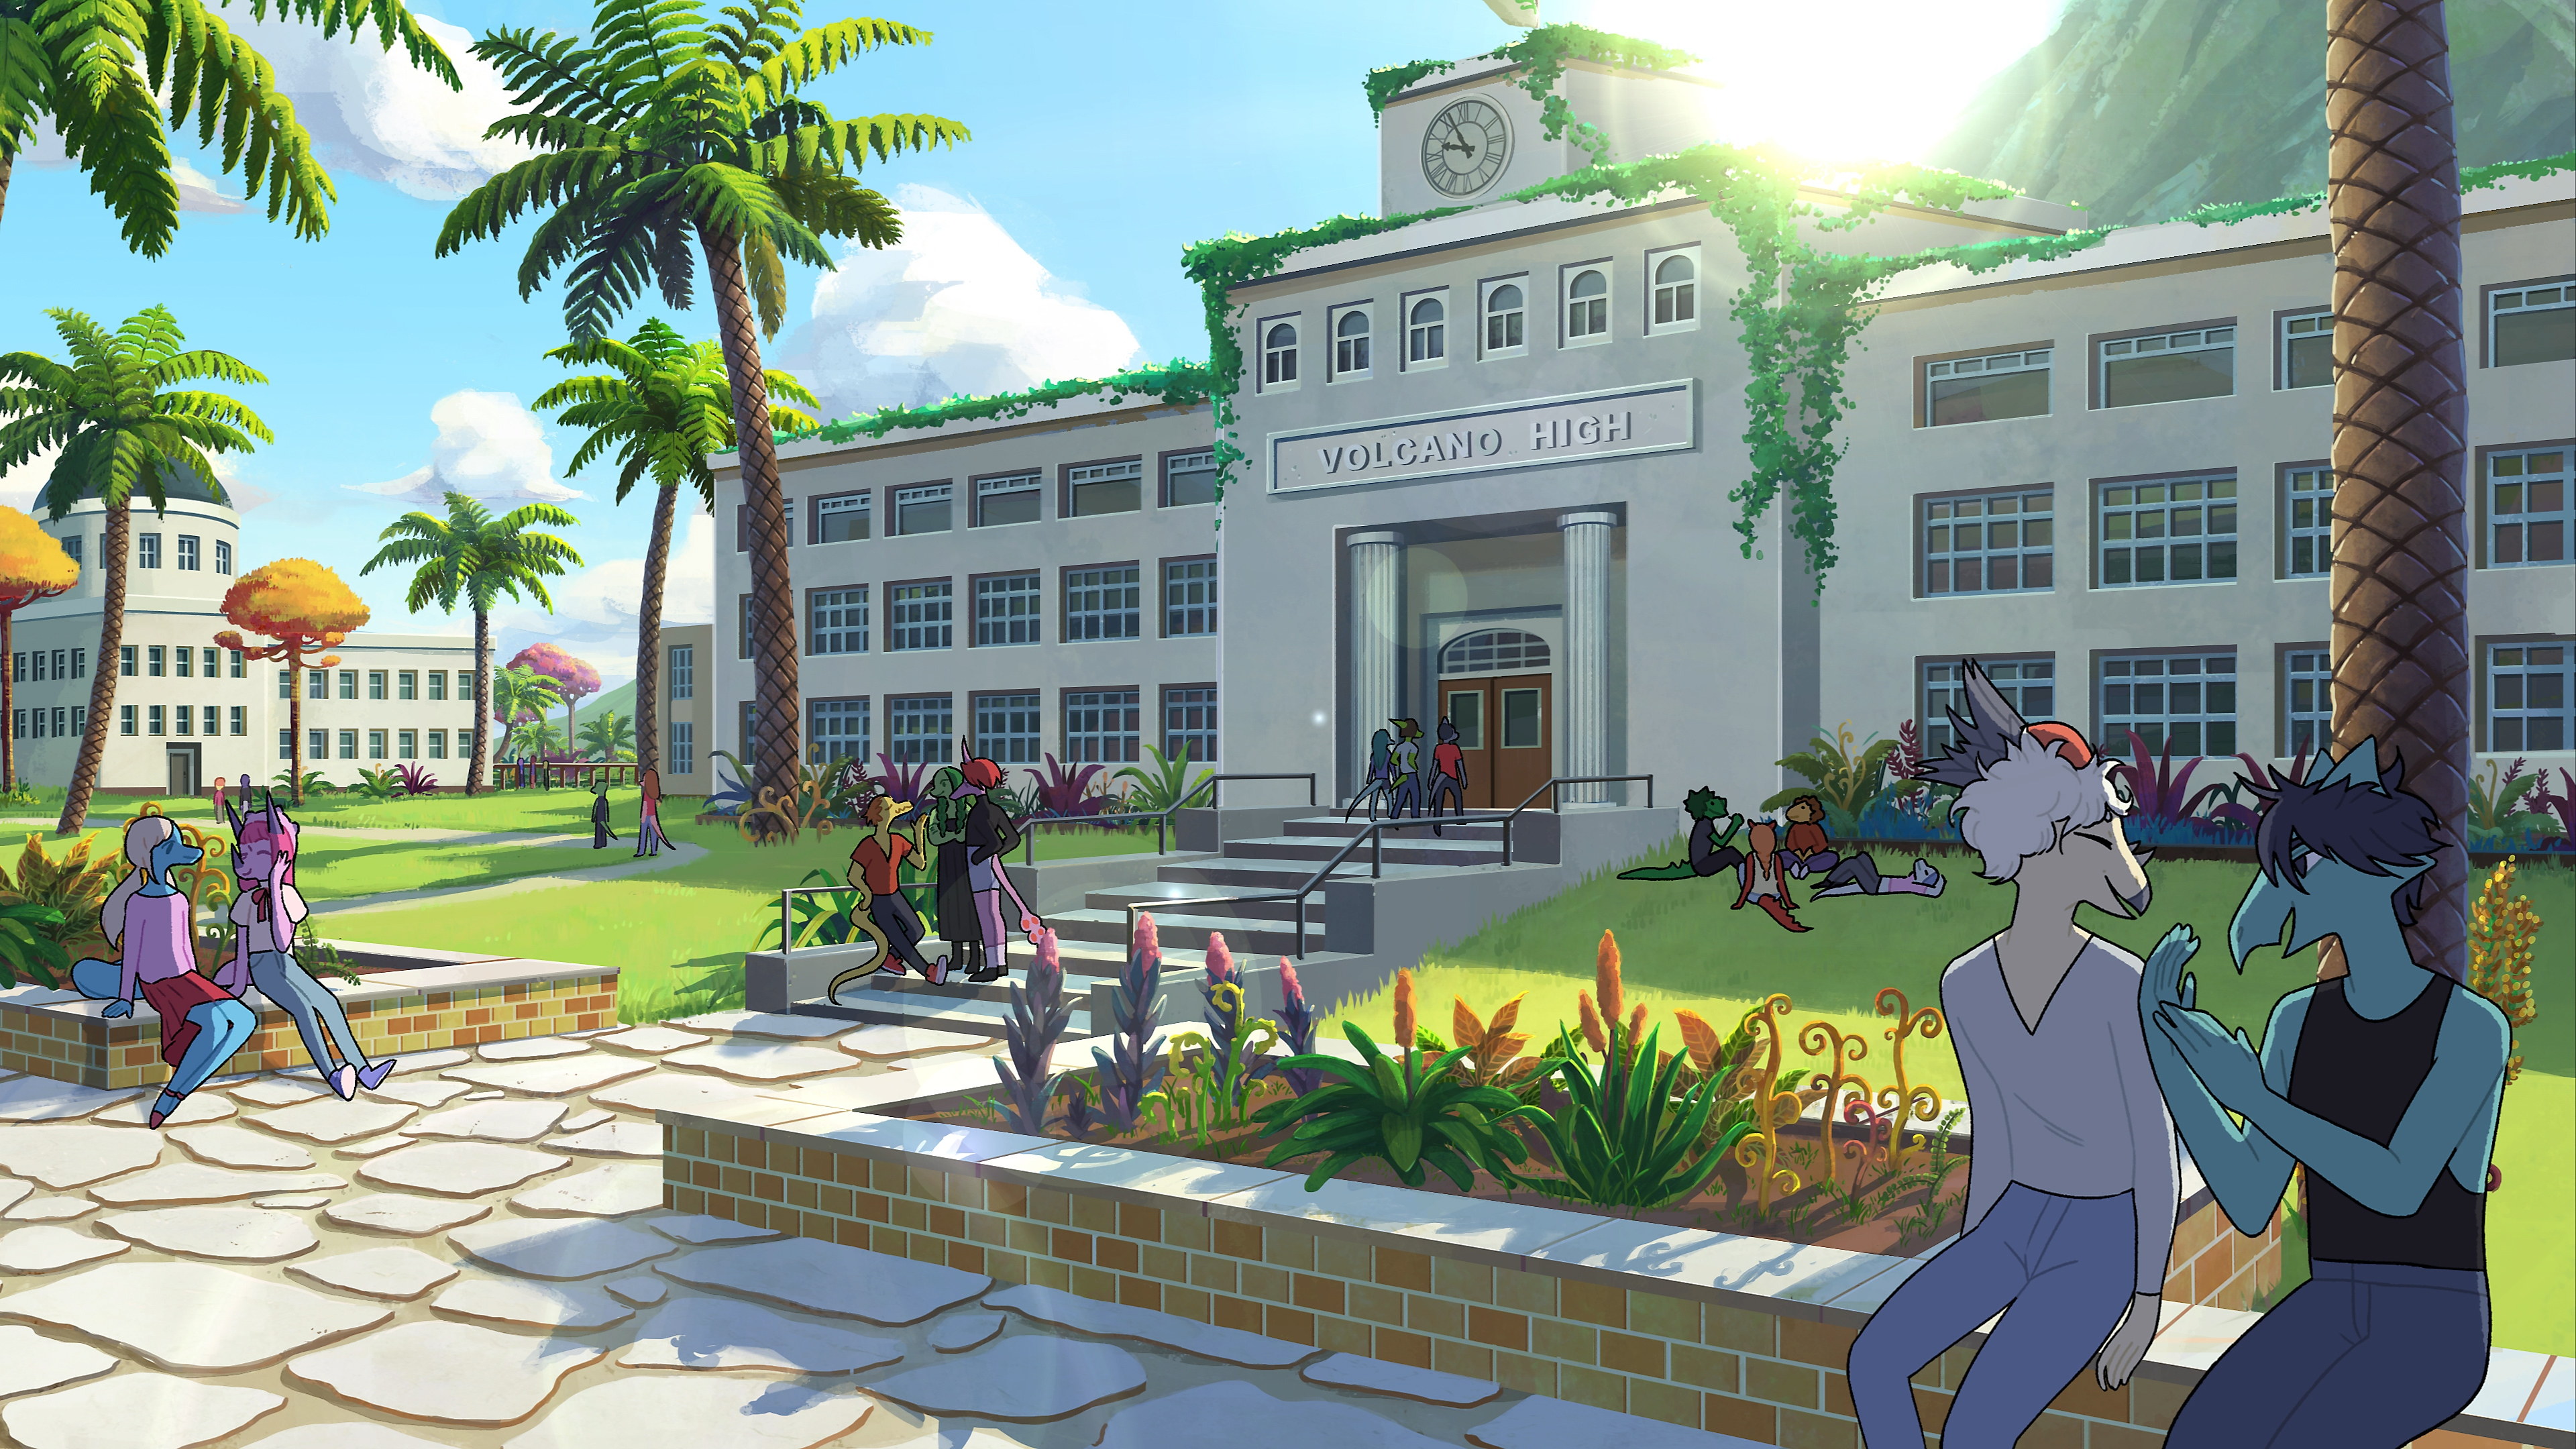 Goodbye Volcano High - reveal screenshot